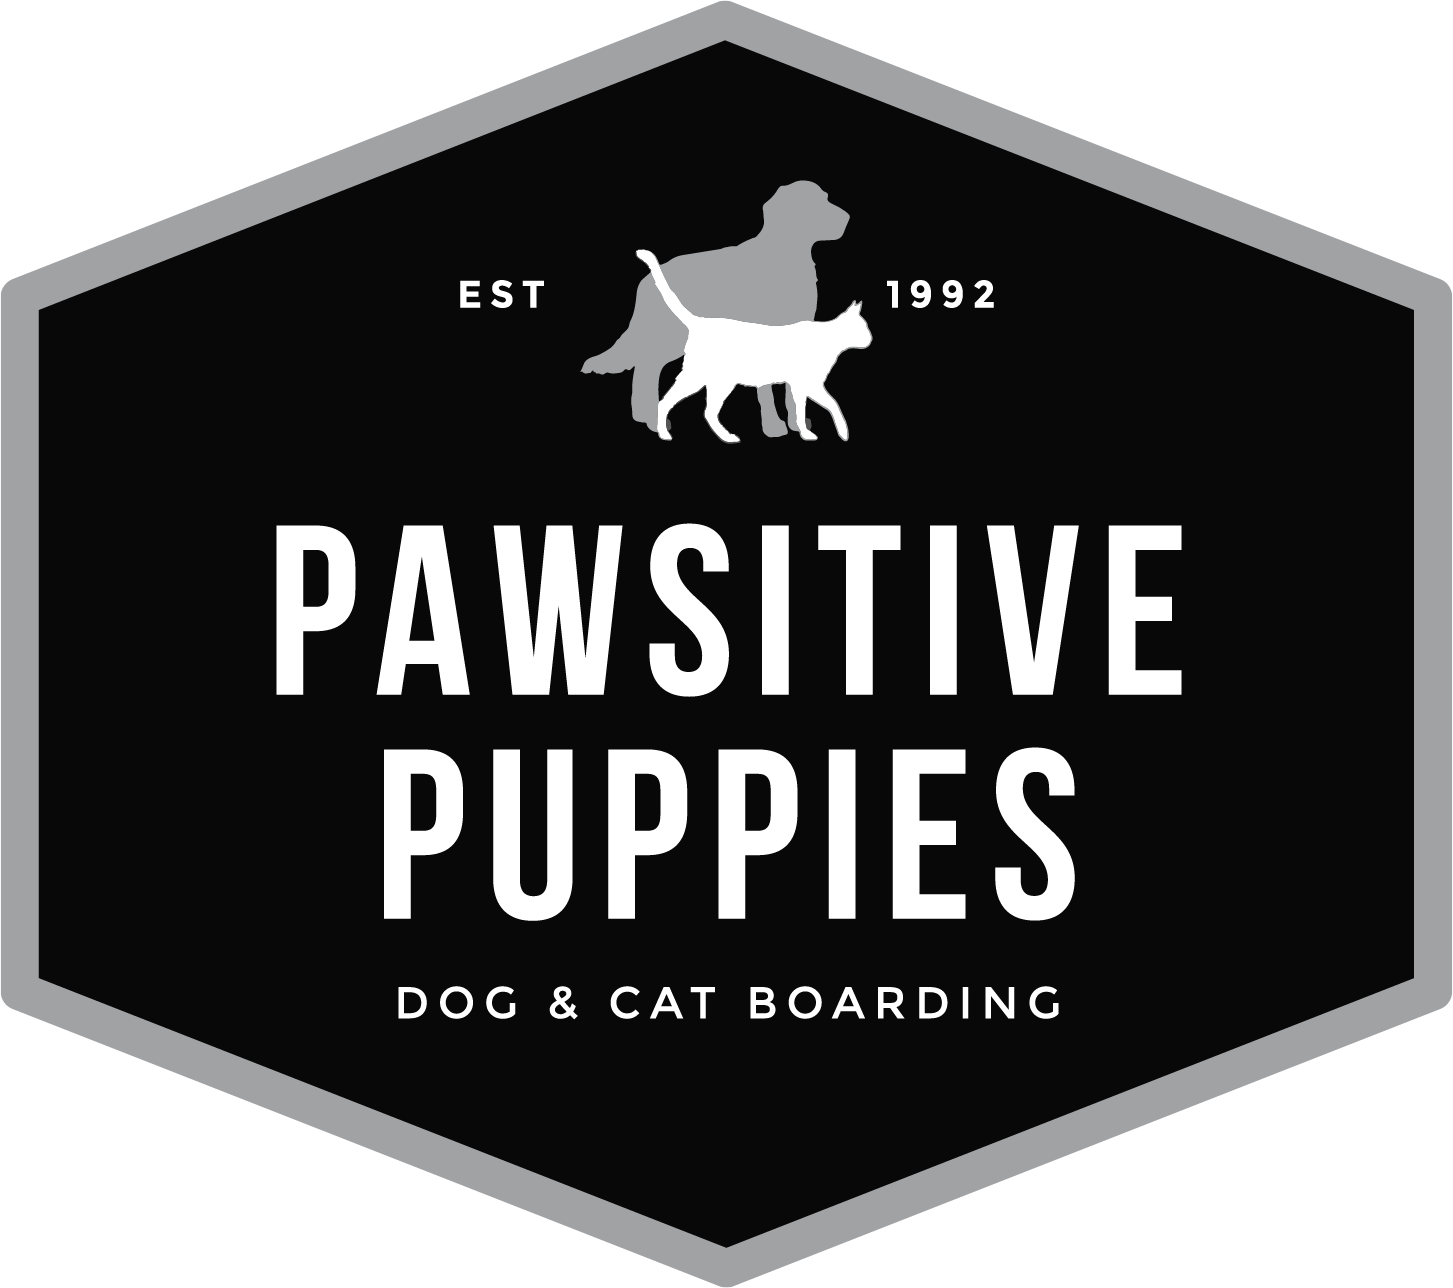 PAWSITIVE PUPPIES